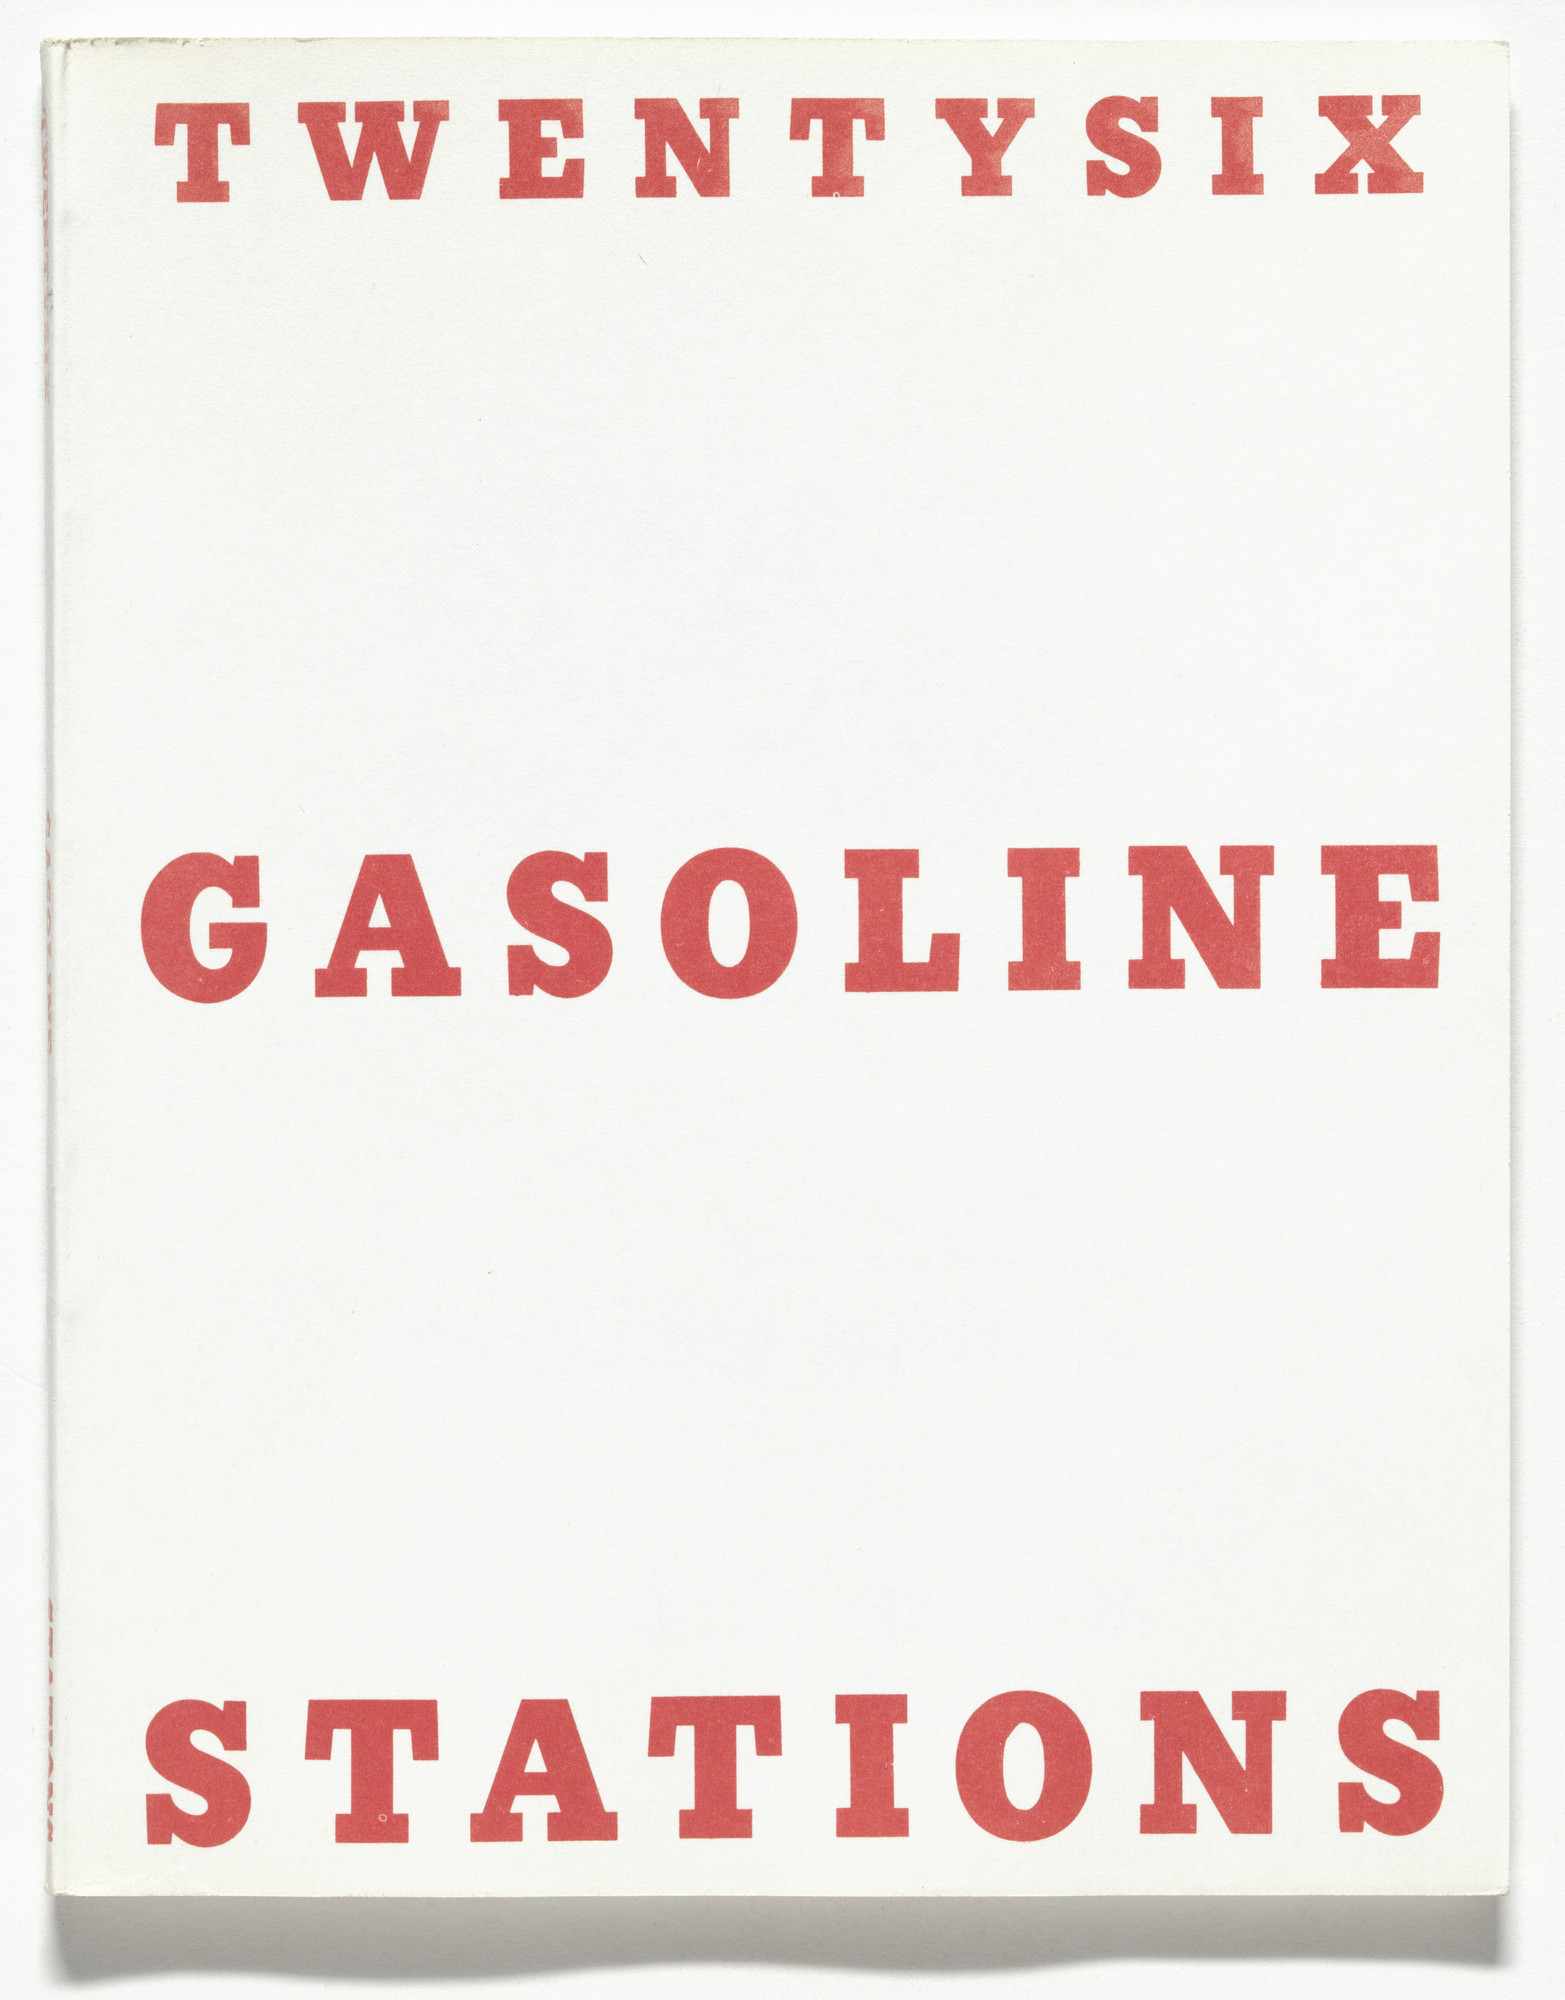 Edward Ruscha. Twentysix Gasoline Stations. 1963, printed 1969